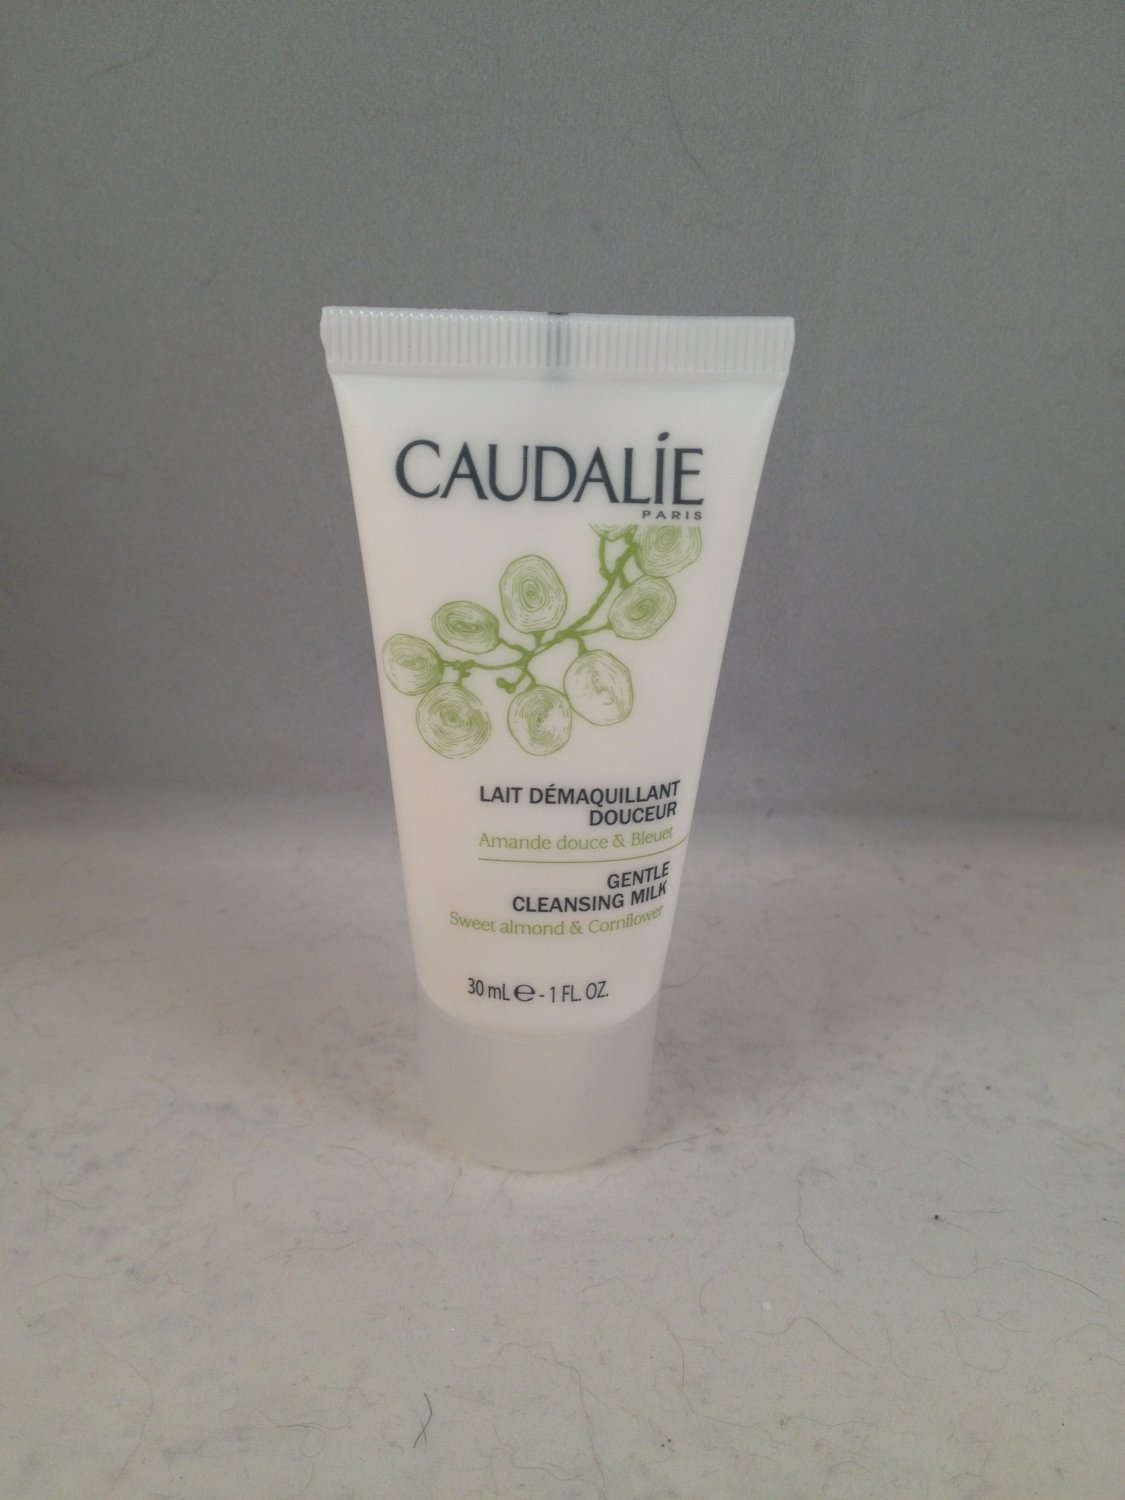 Caudalie Gentle Cleansing Milk travel size face skin care cleanser facial